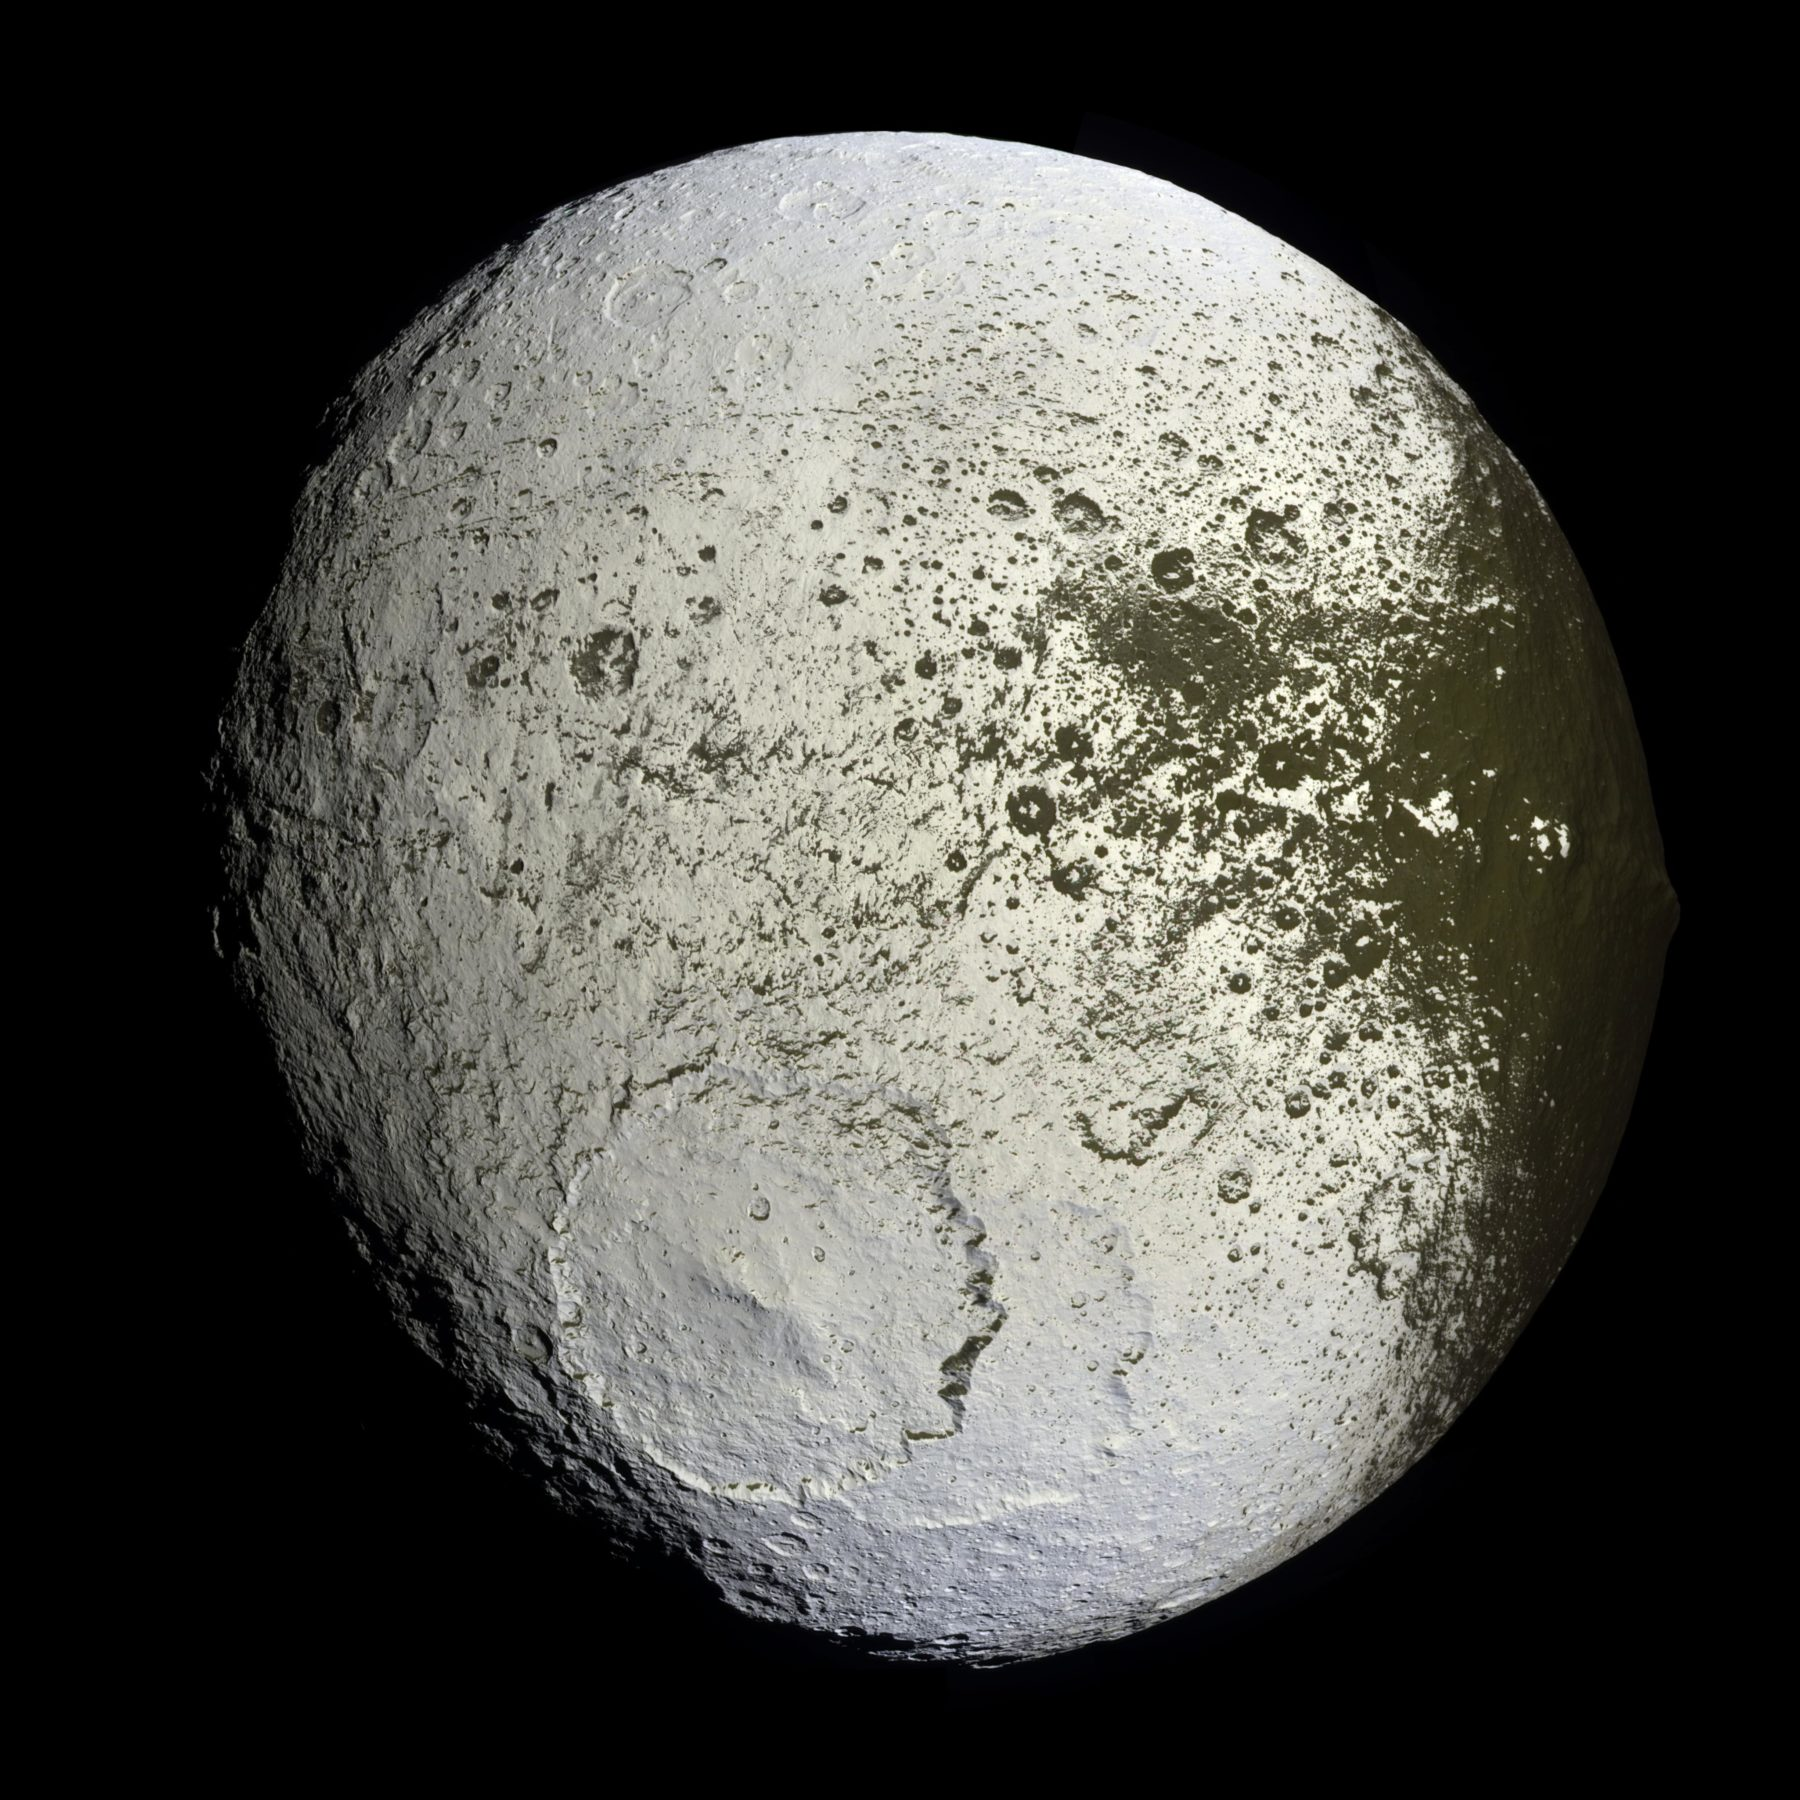 The moon Iapetus is an alien Death Star.